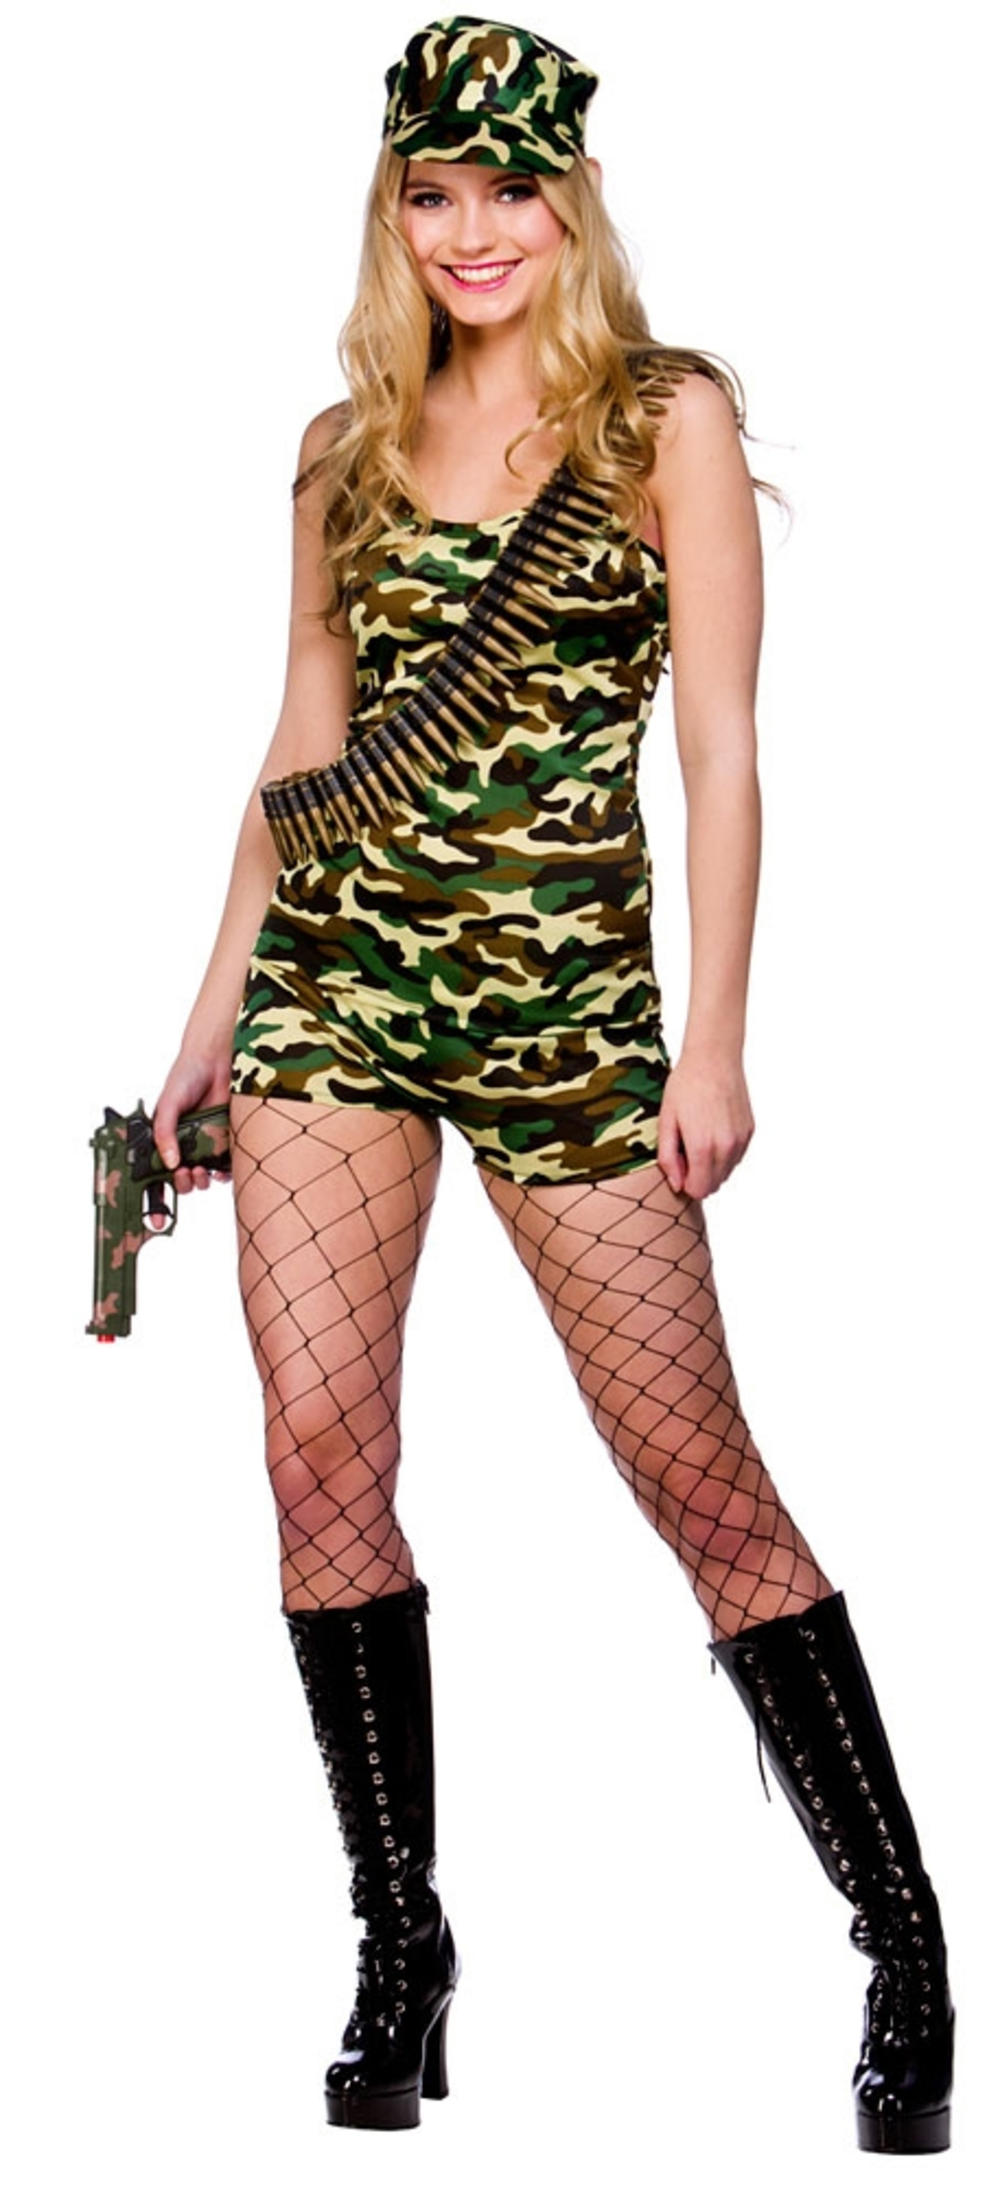 Camo Bootcamp Babe Ladies Army Fancy Dress Womens Military Uniform Adult Costume